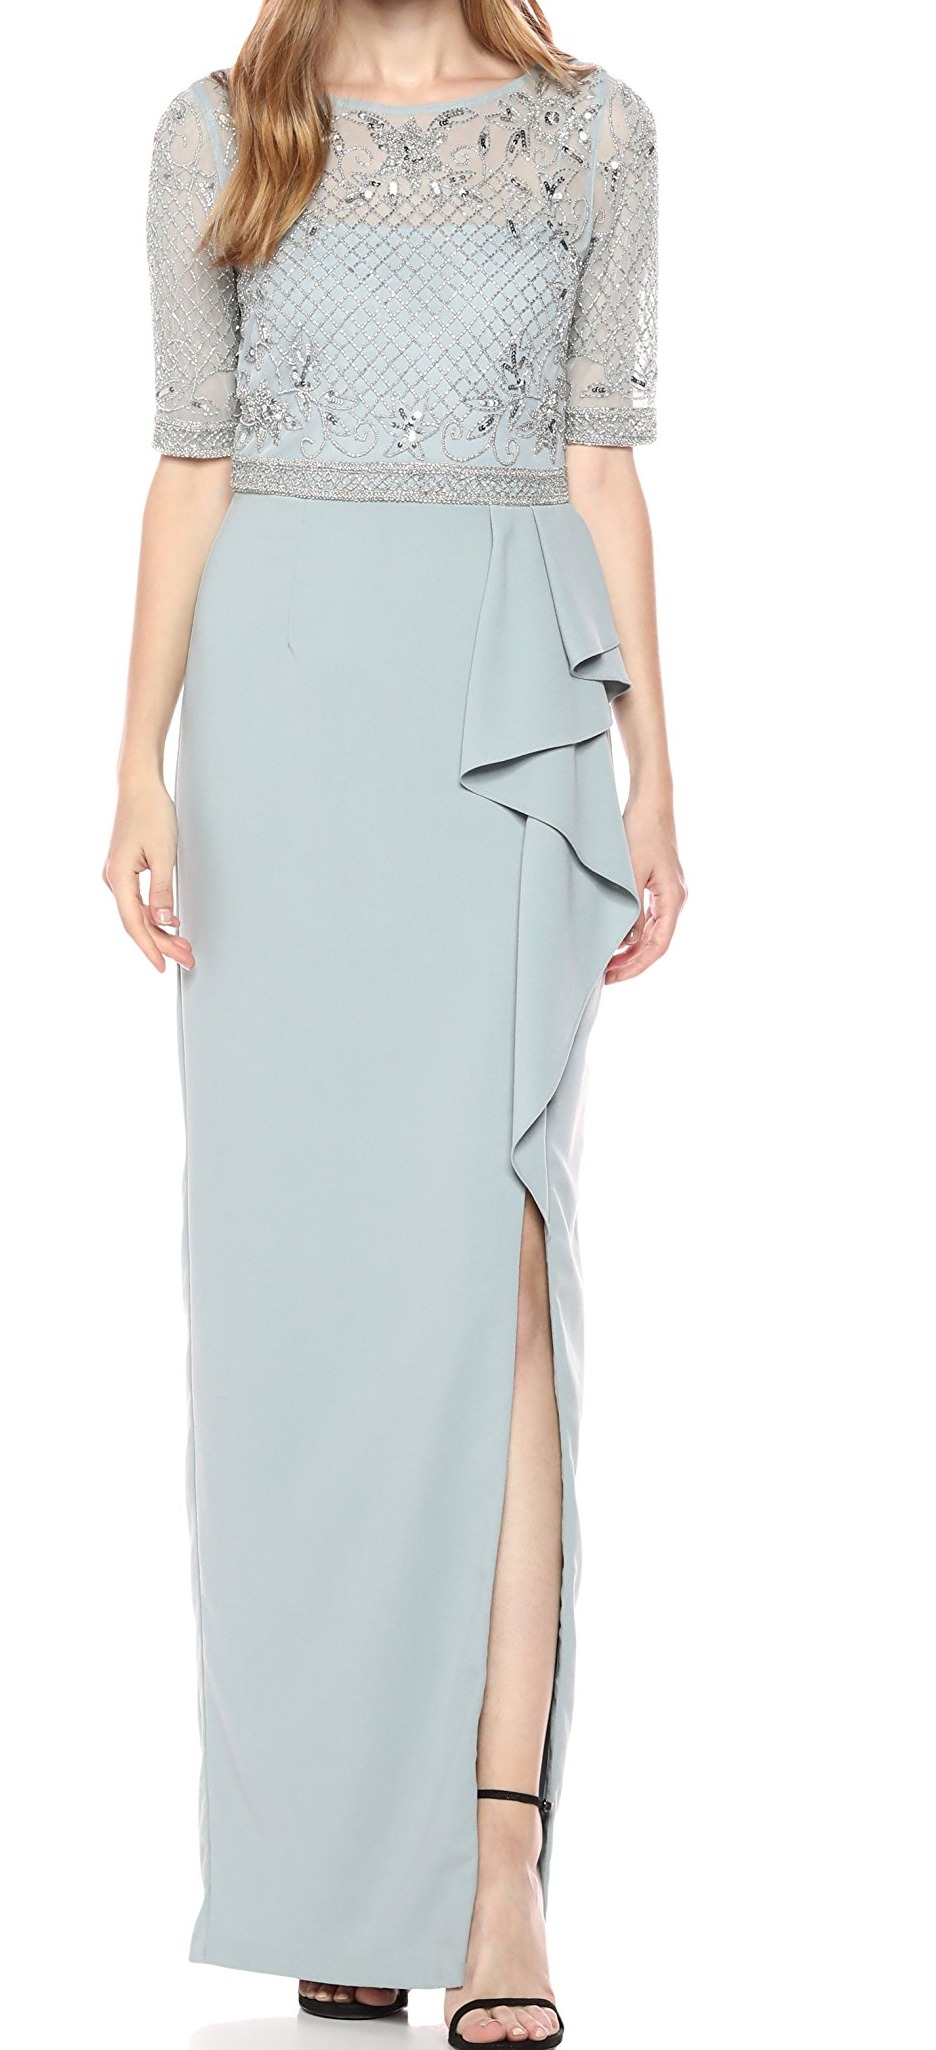 Adrianna Papell Womens Petite Long Dress with Beaded Top and Ruffle on Skirt